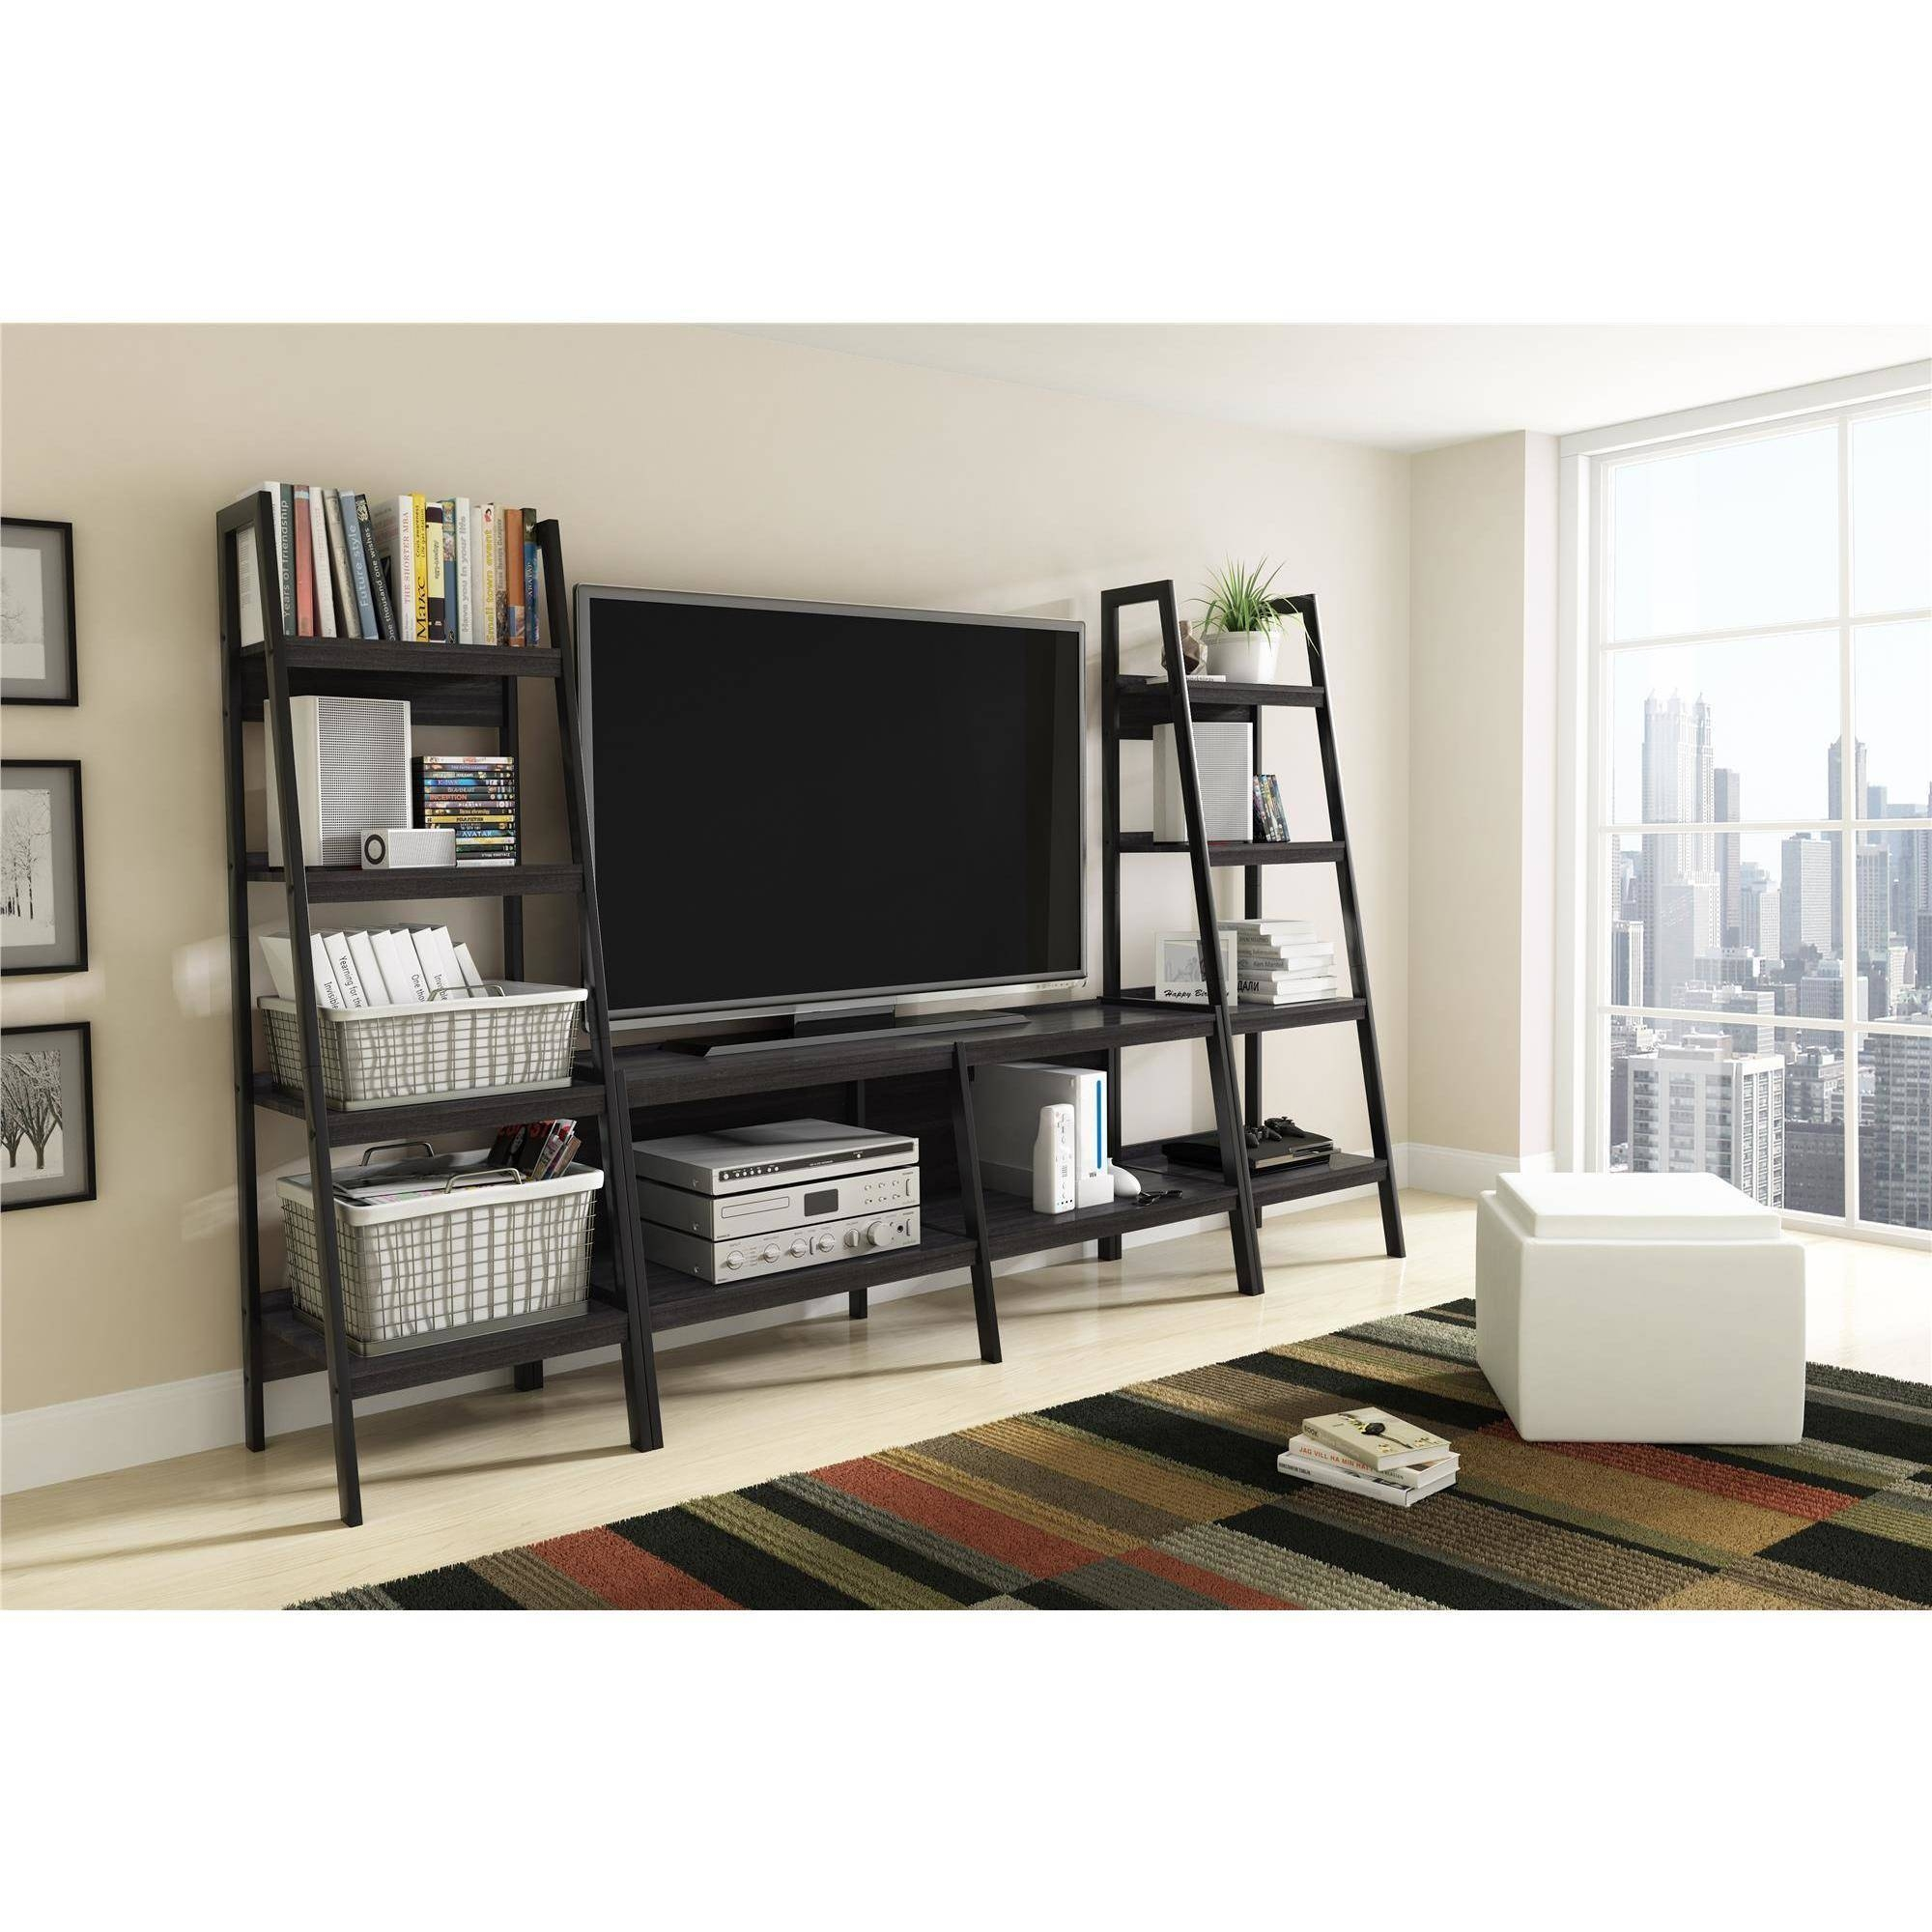 Furniture Entertainment Center Tv Mount Small Tv Stand For Throughout Tv Storage Units (View 15 of 15)